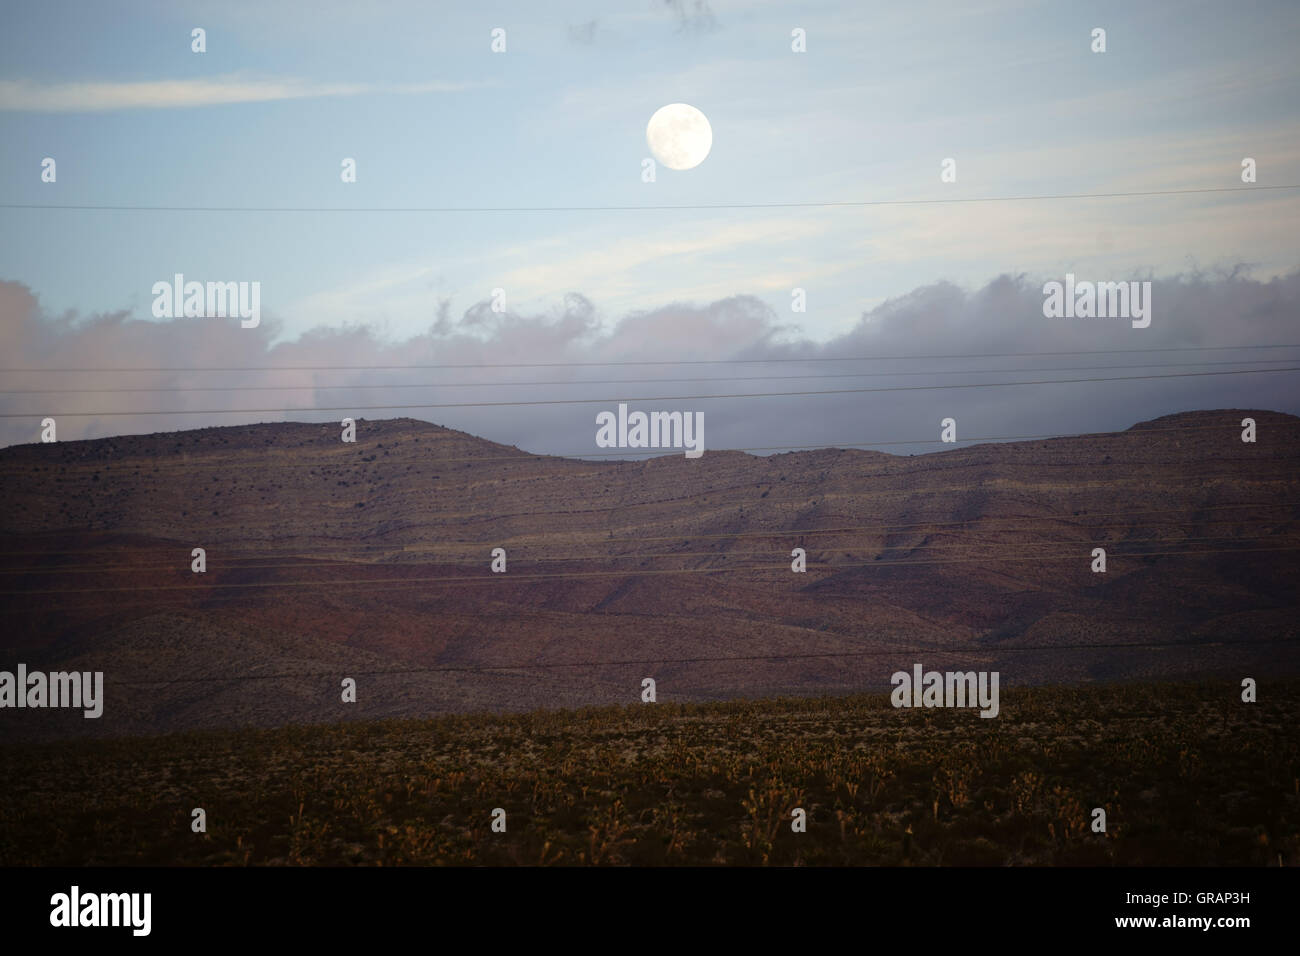 Full Moon Over The Mountains - Stock Image